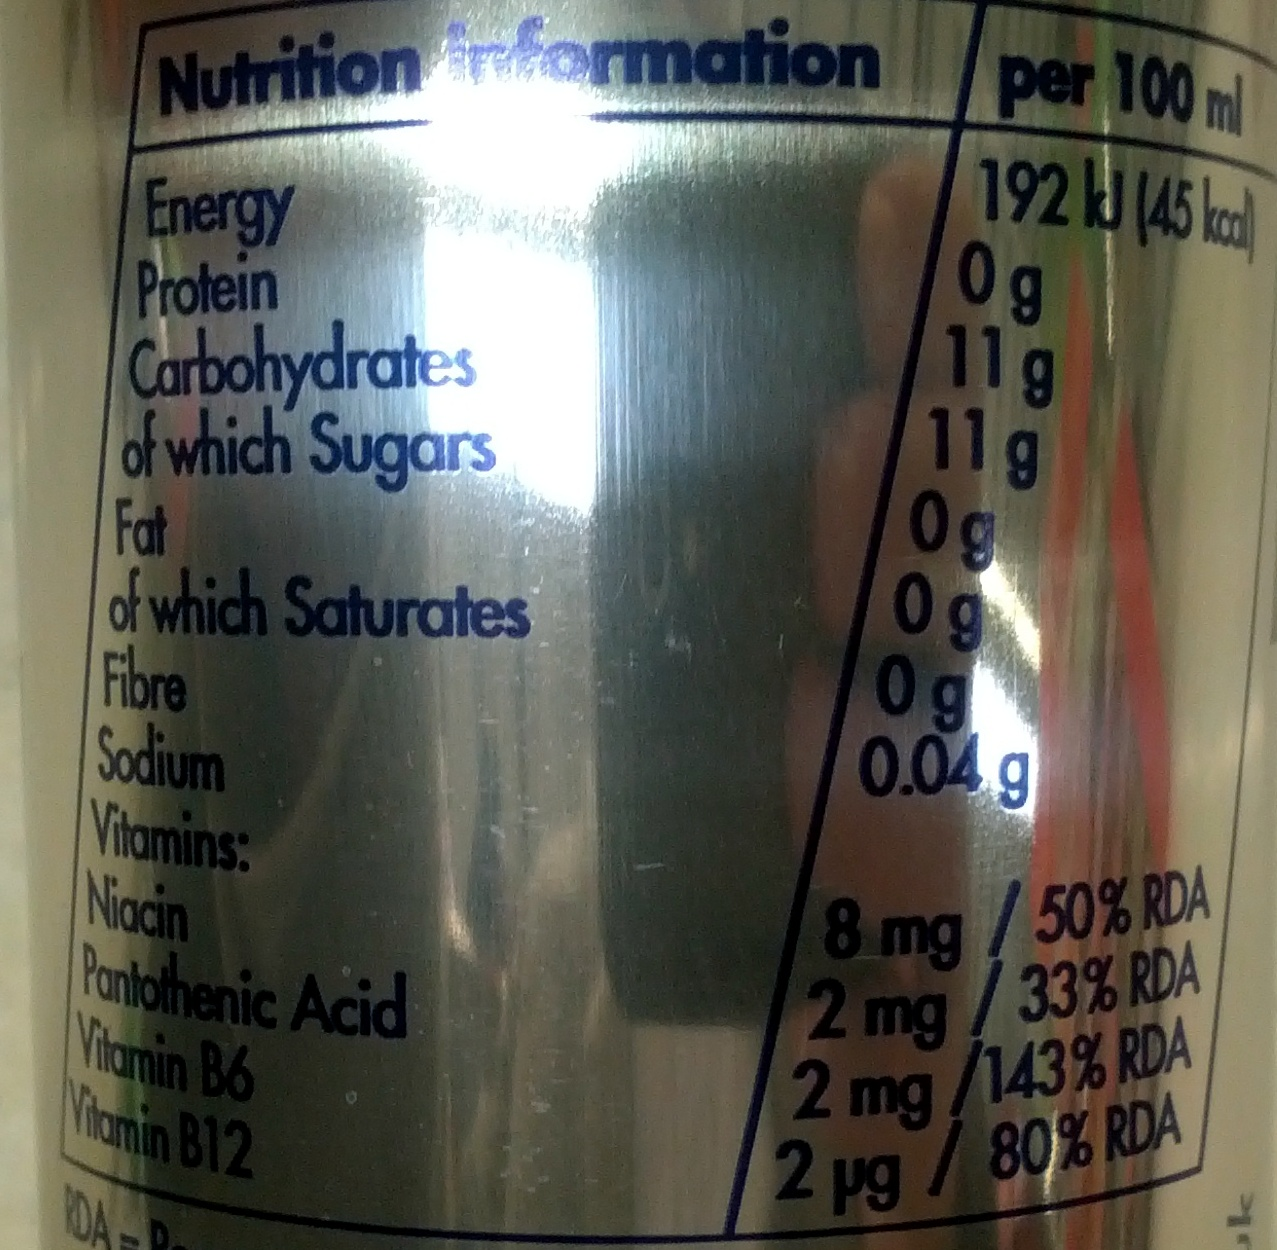 Red Bull - Nutrition facts